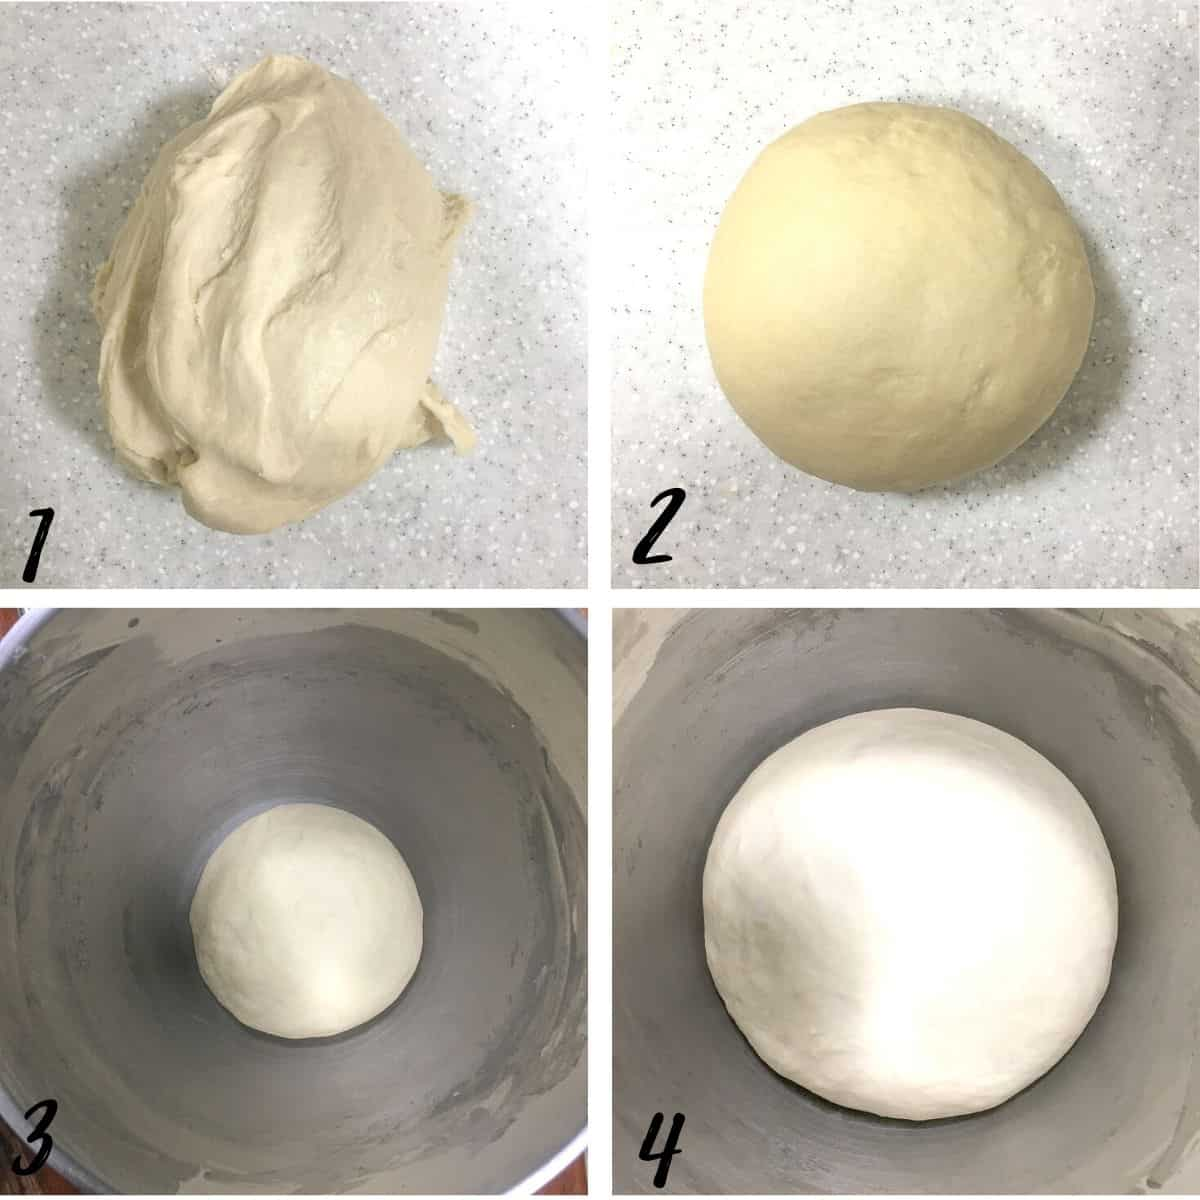 A poster of 4 images showing how to proof bread dough